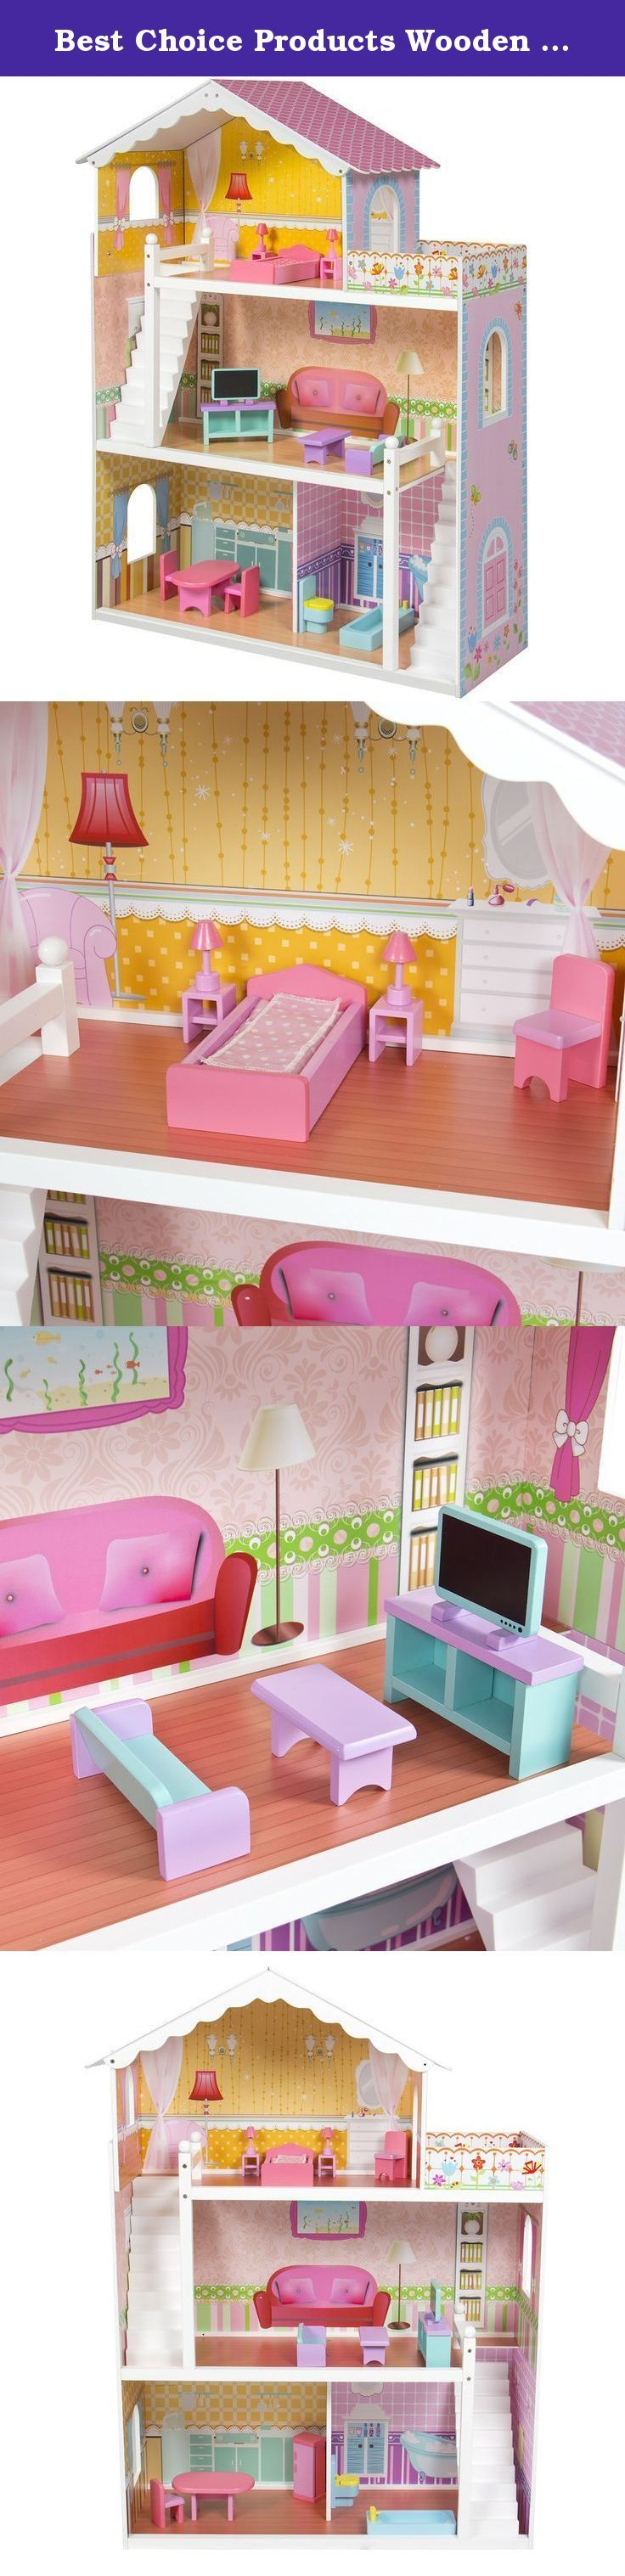 "Best Choice Products Wooden Dollhouse with Furniture. Best Choice Products presents you this brand new dollhouse with furniture. This environmental friendly, non-toxic paint wooden dollhouse features 3 stories of fun, illustrated with a bathroom, a bedroom, a living room, a kitchen, and a balcony. This dollhouse comes with 17 pcs mini wood furniture, and can accommodated Barbie or dolls up to 14"" tall. This beautiful dollhouse is a prefect addition to kid's playroom. Kids will definitely..."